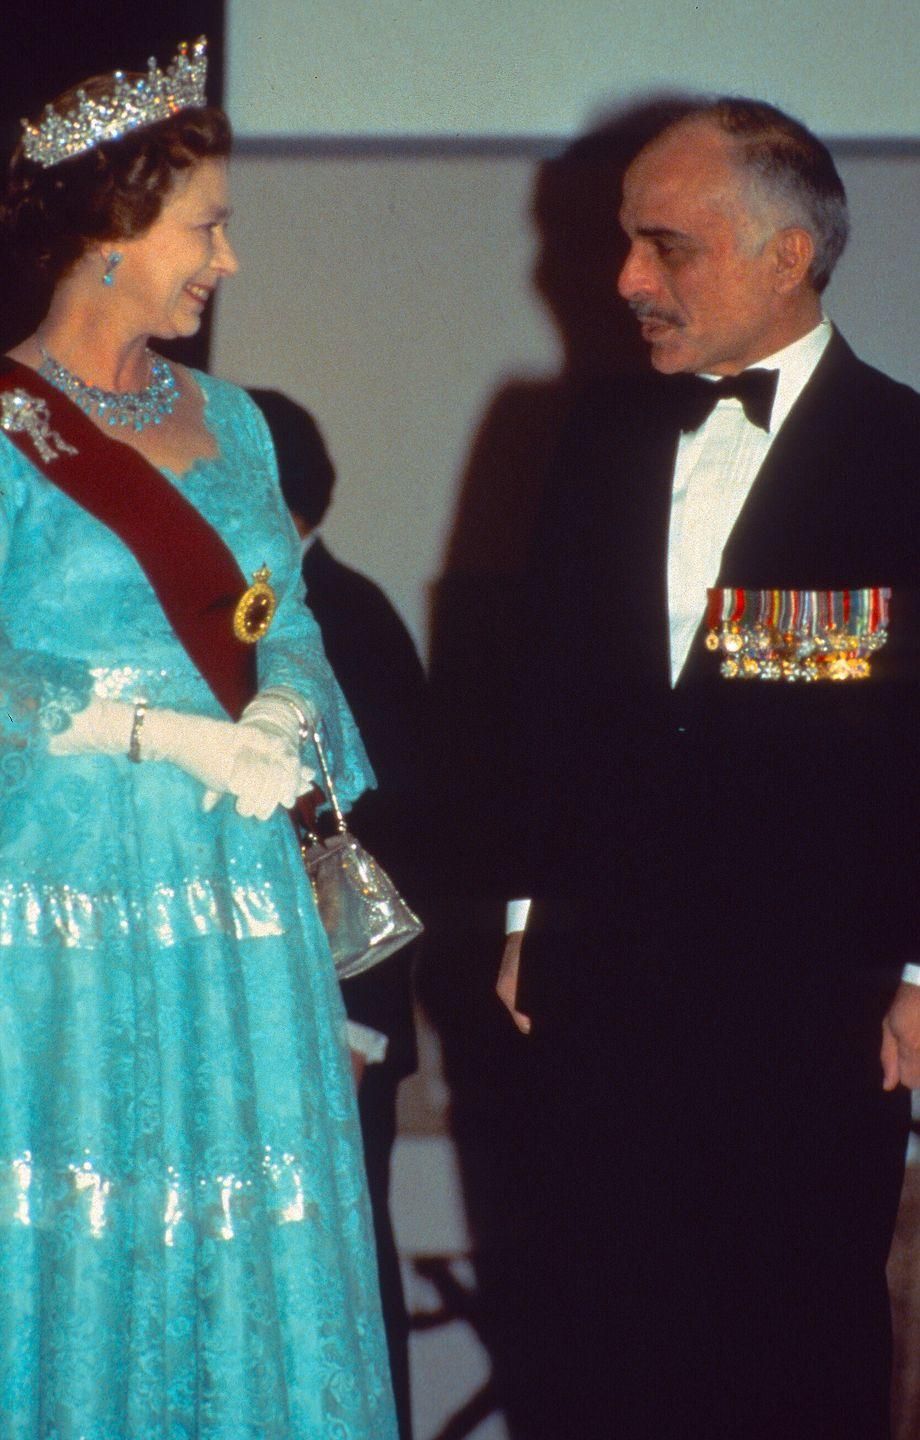 <p>King Hussein of Jordan gifted Queen Elizabeth a suite of turquoise and sapphire jewelry (a necklace and earrings) during his official trip to England in 1966. When she paid a return visit in 1984, the monarch wore the set to a state banquet. </p>